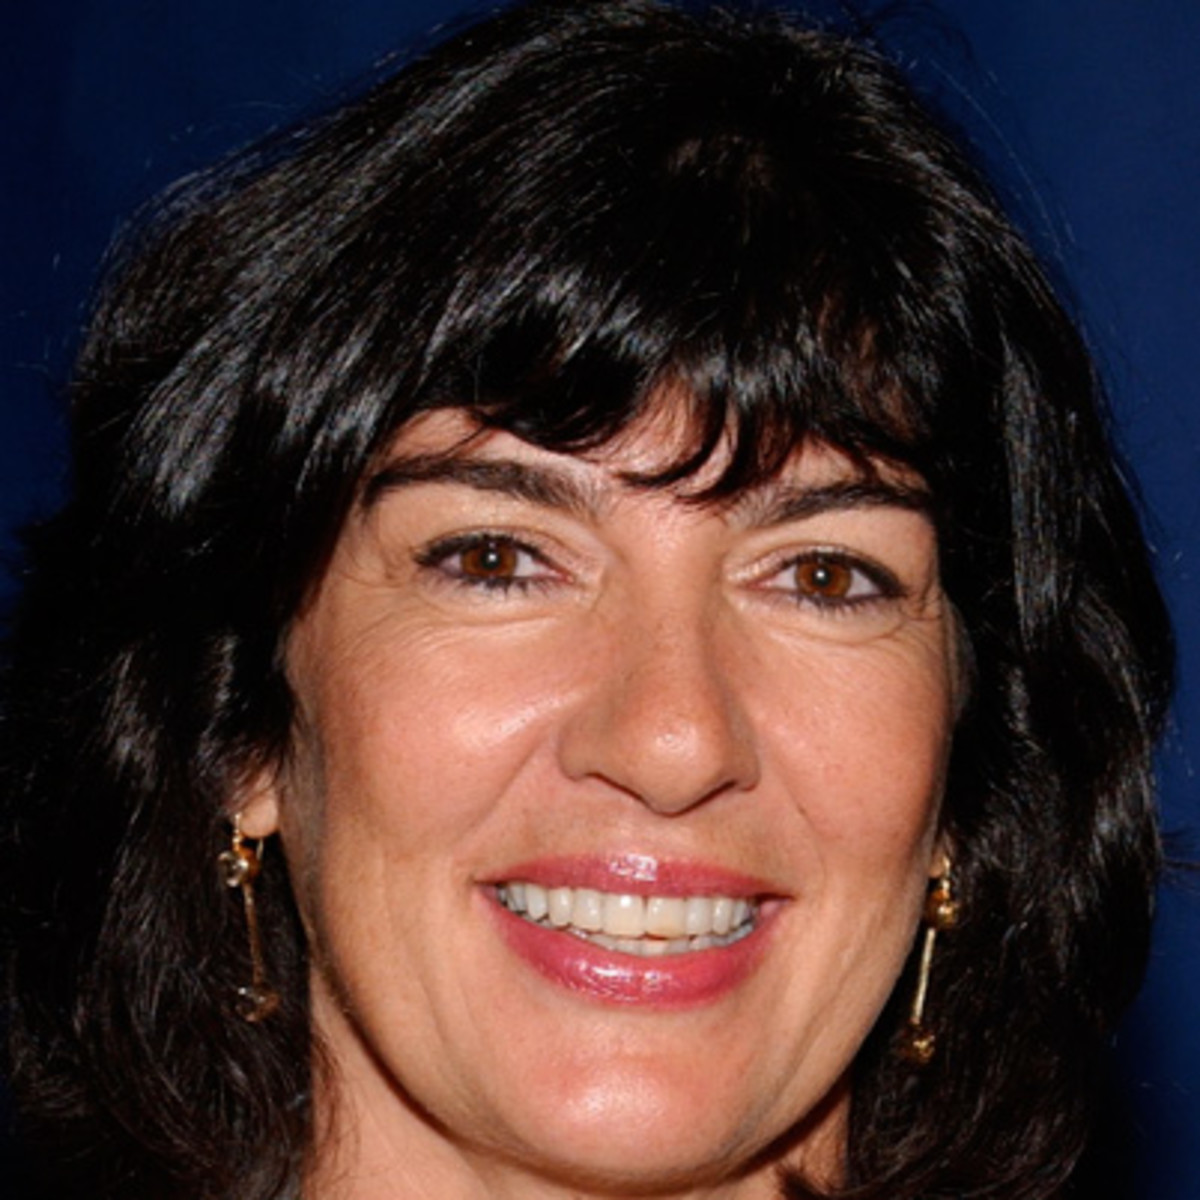 christiane amanpour - news anchor, journalist - biography